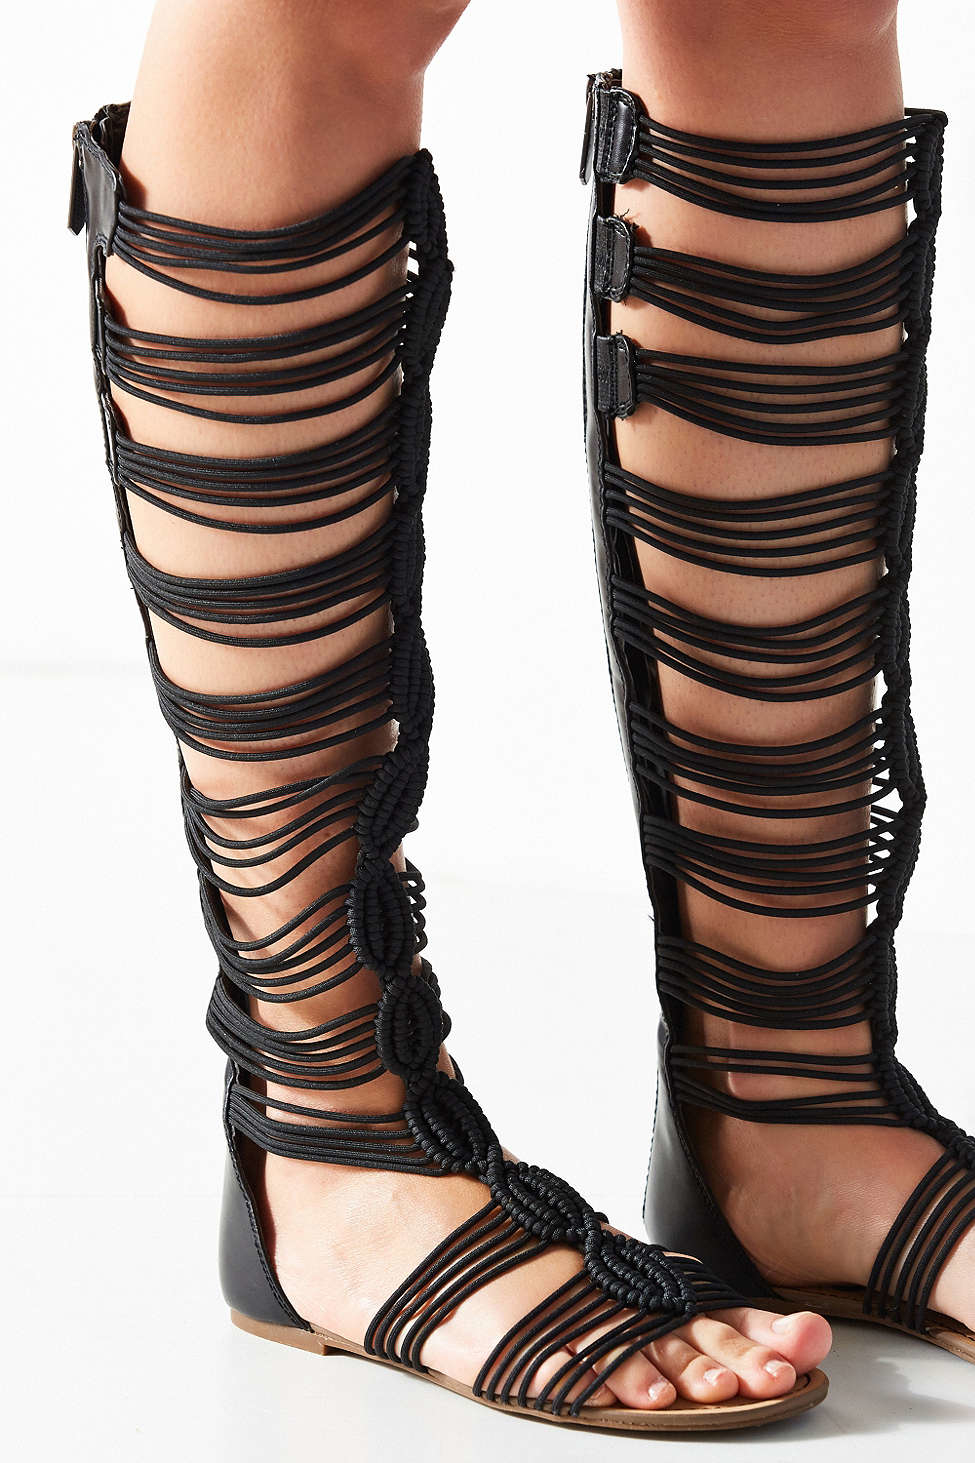 6e1d3227ab3 Circus by Sam Edelman Badger Gladiator Sandal in Black - Lyst